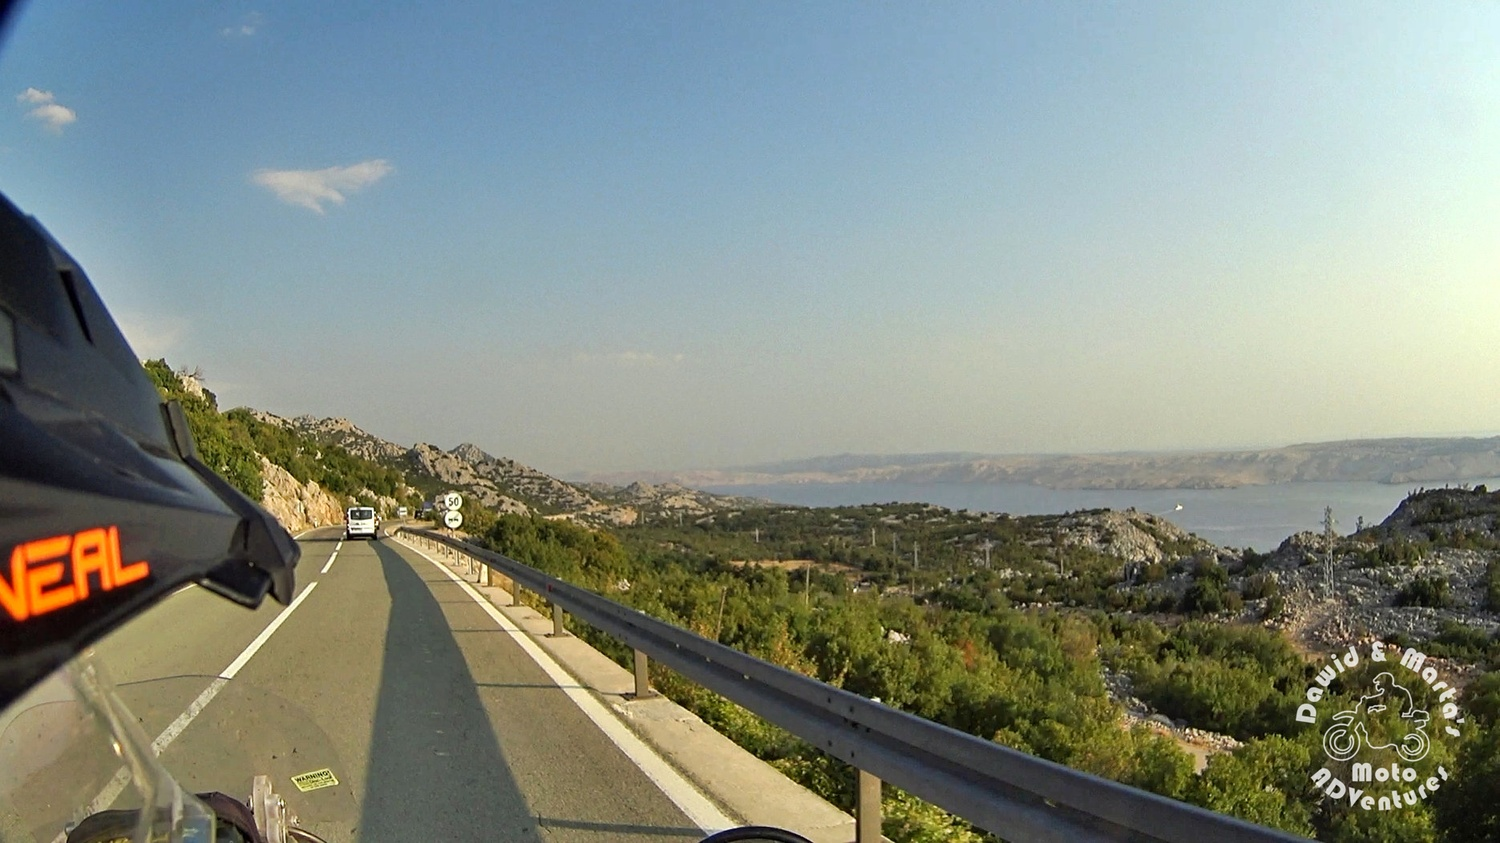 The Pag Island on the horizon - view from the E65 Adriatic Highway.jpg